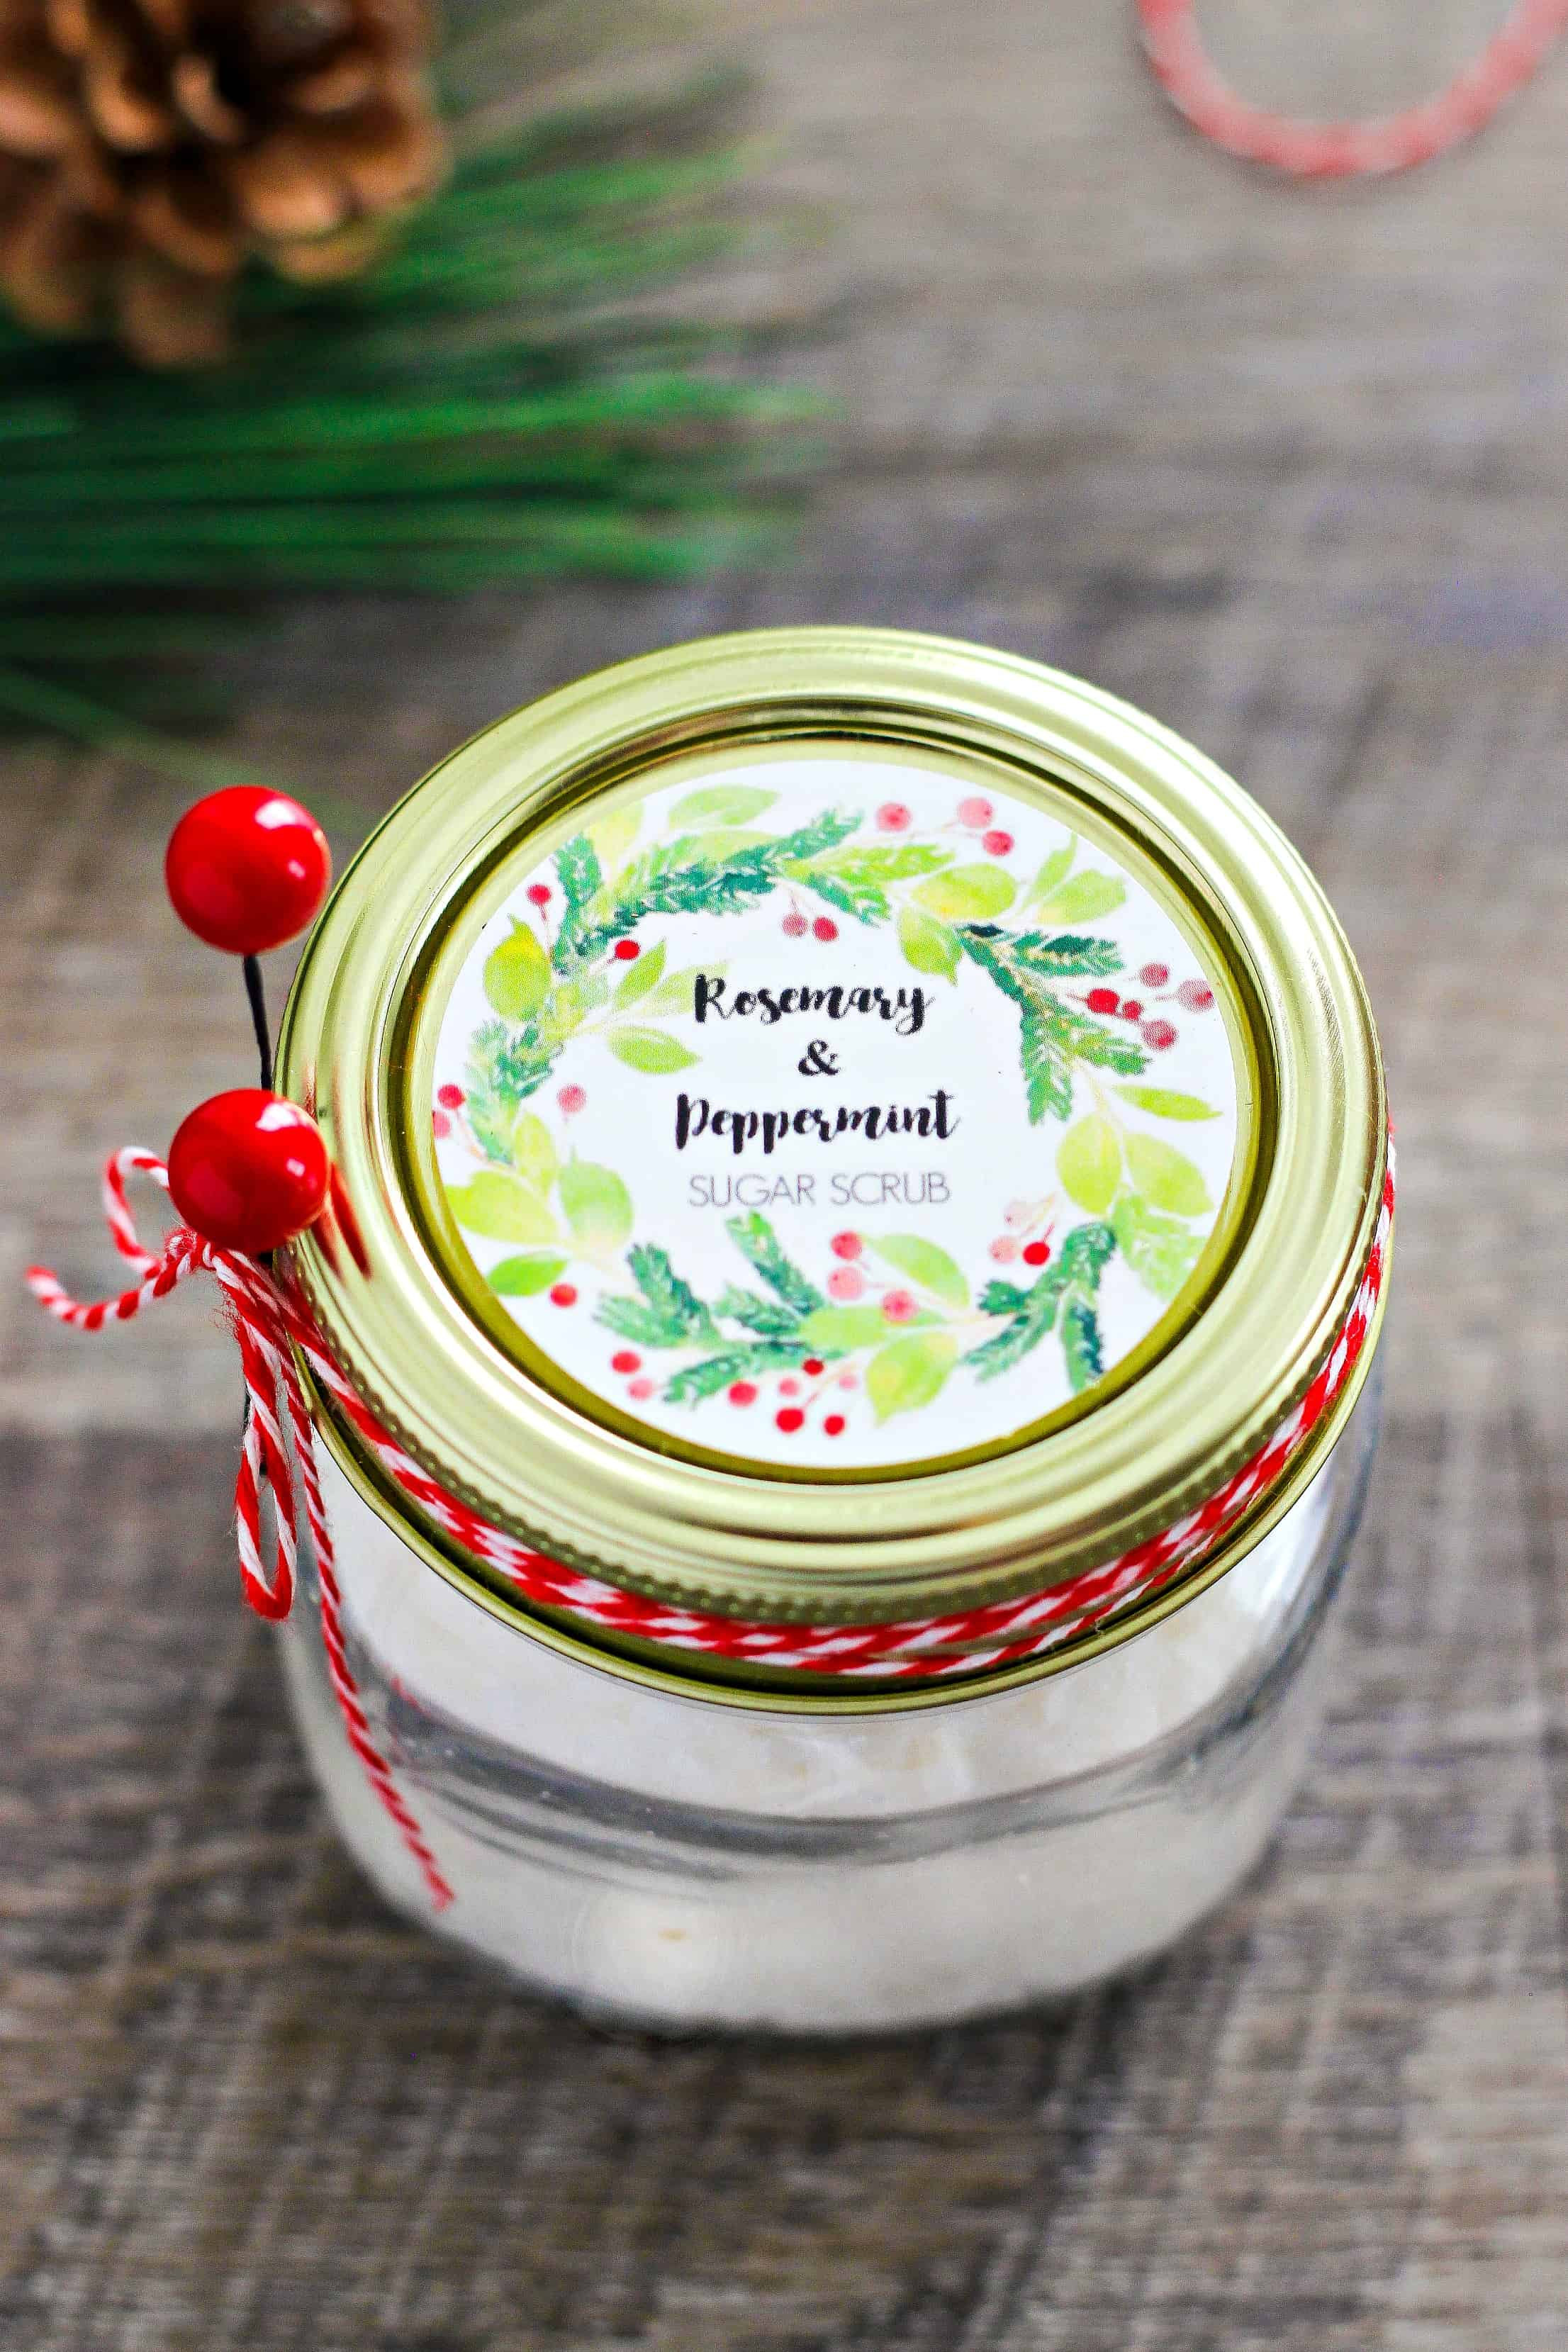 Homemade Rosemary and Peppermint Sugar Scrub recipe with free printable labels - This holiday scrub smells amazing and makes your skin soft and smooth. This would make a great Christmas gift too!